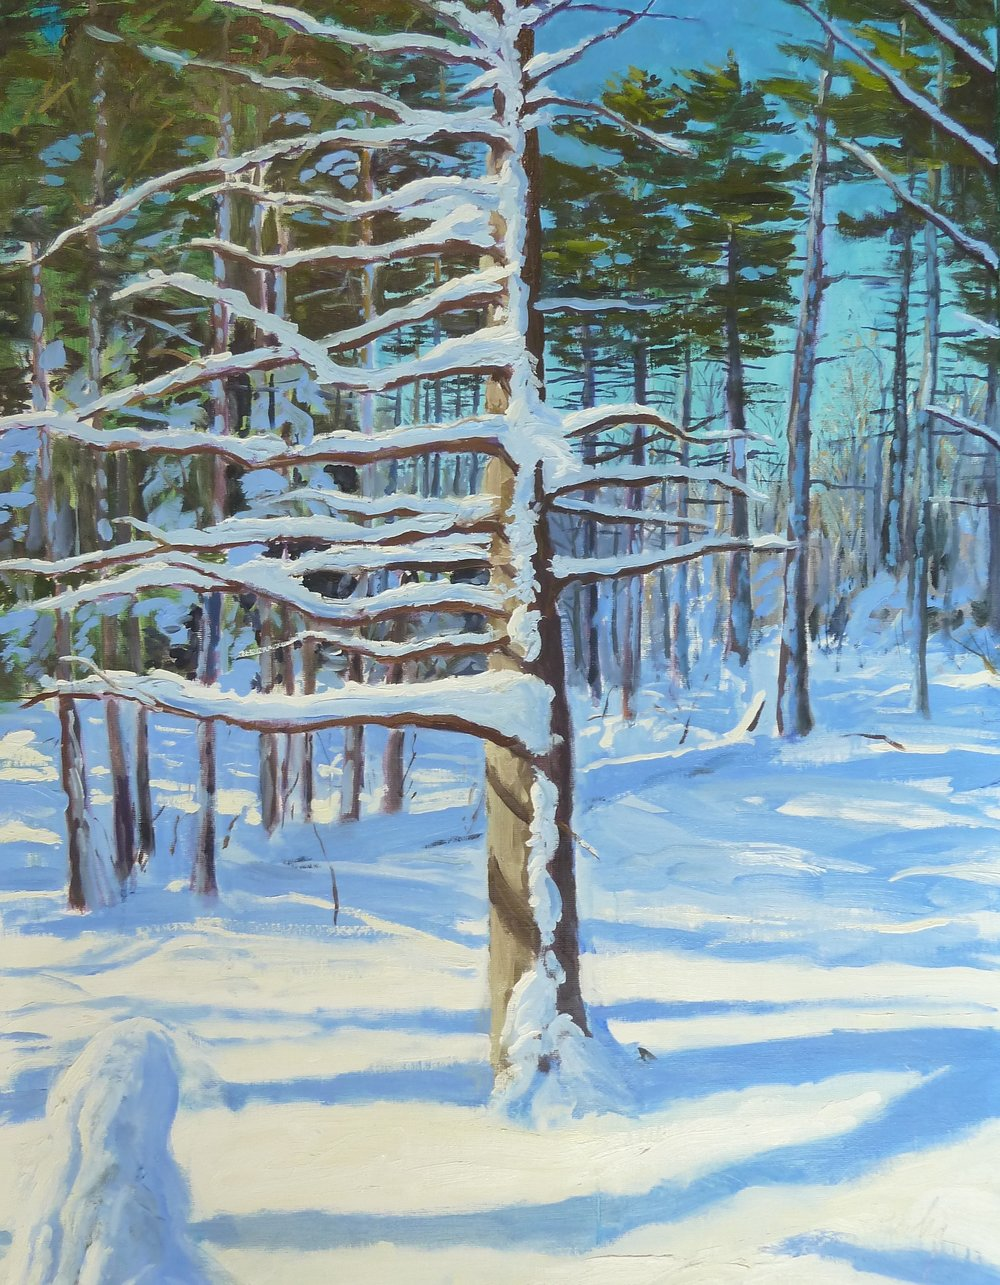 Fresh Snow, oil on linen, 30x40.